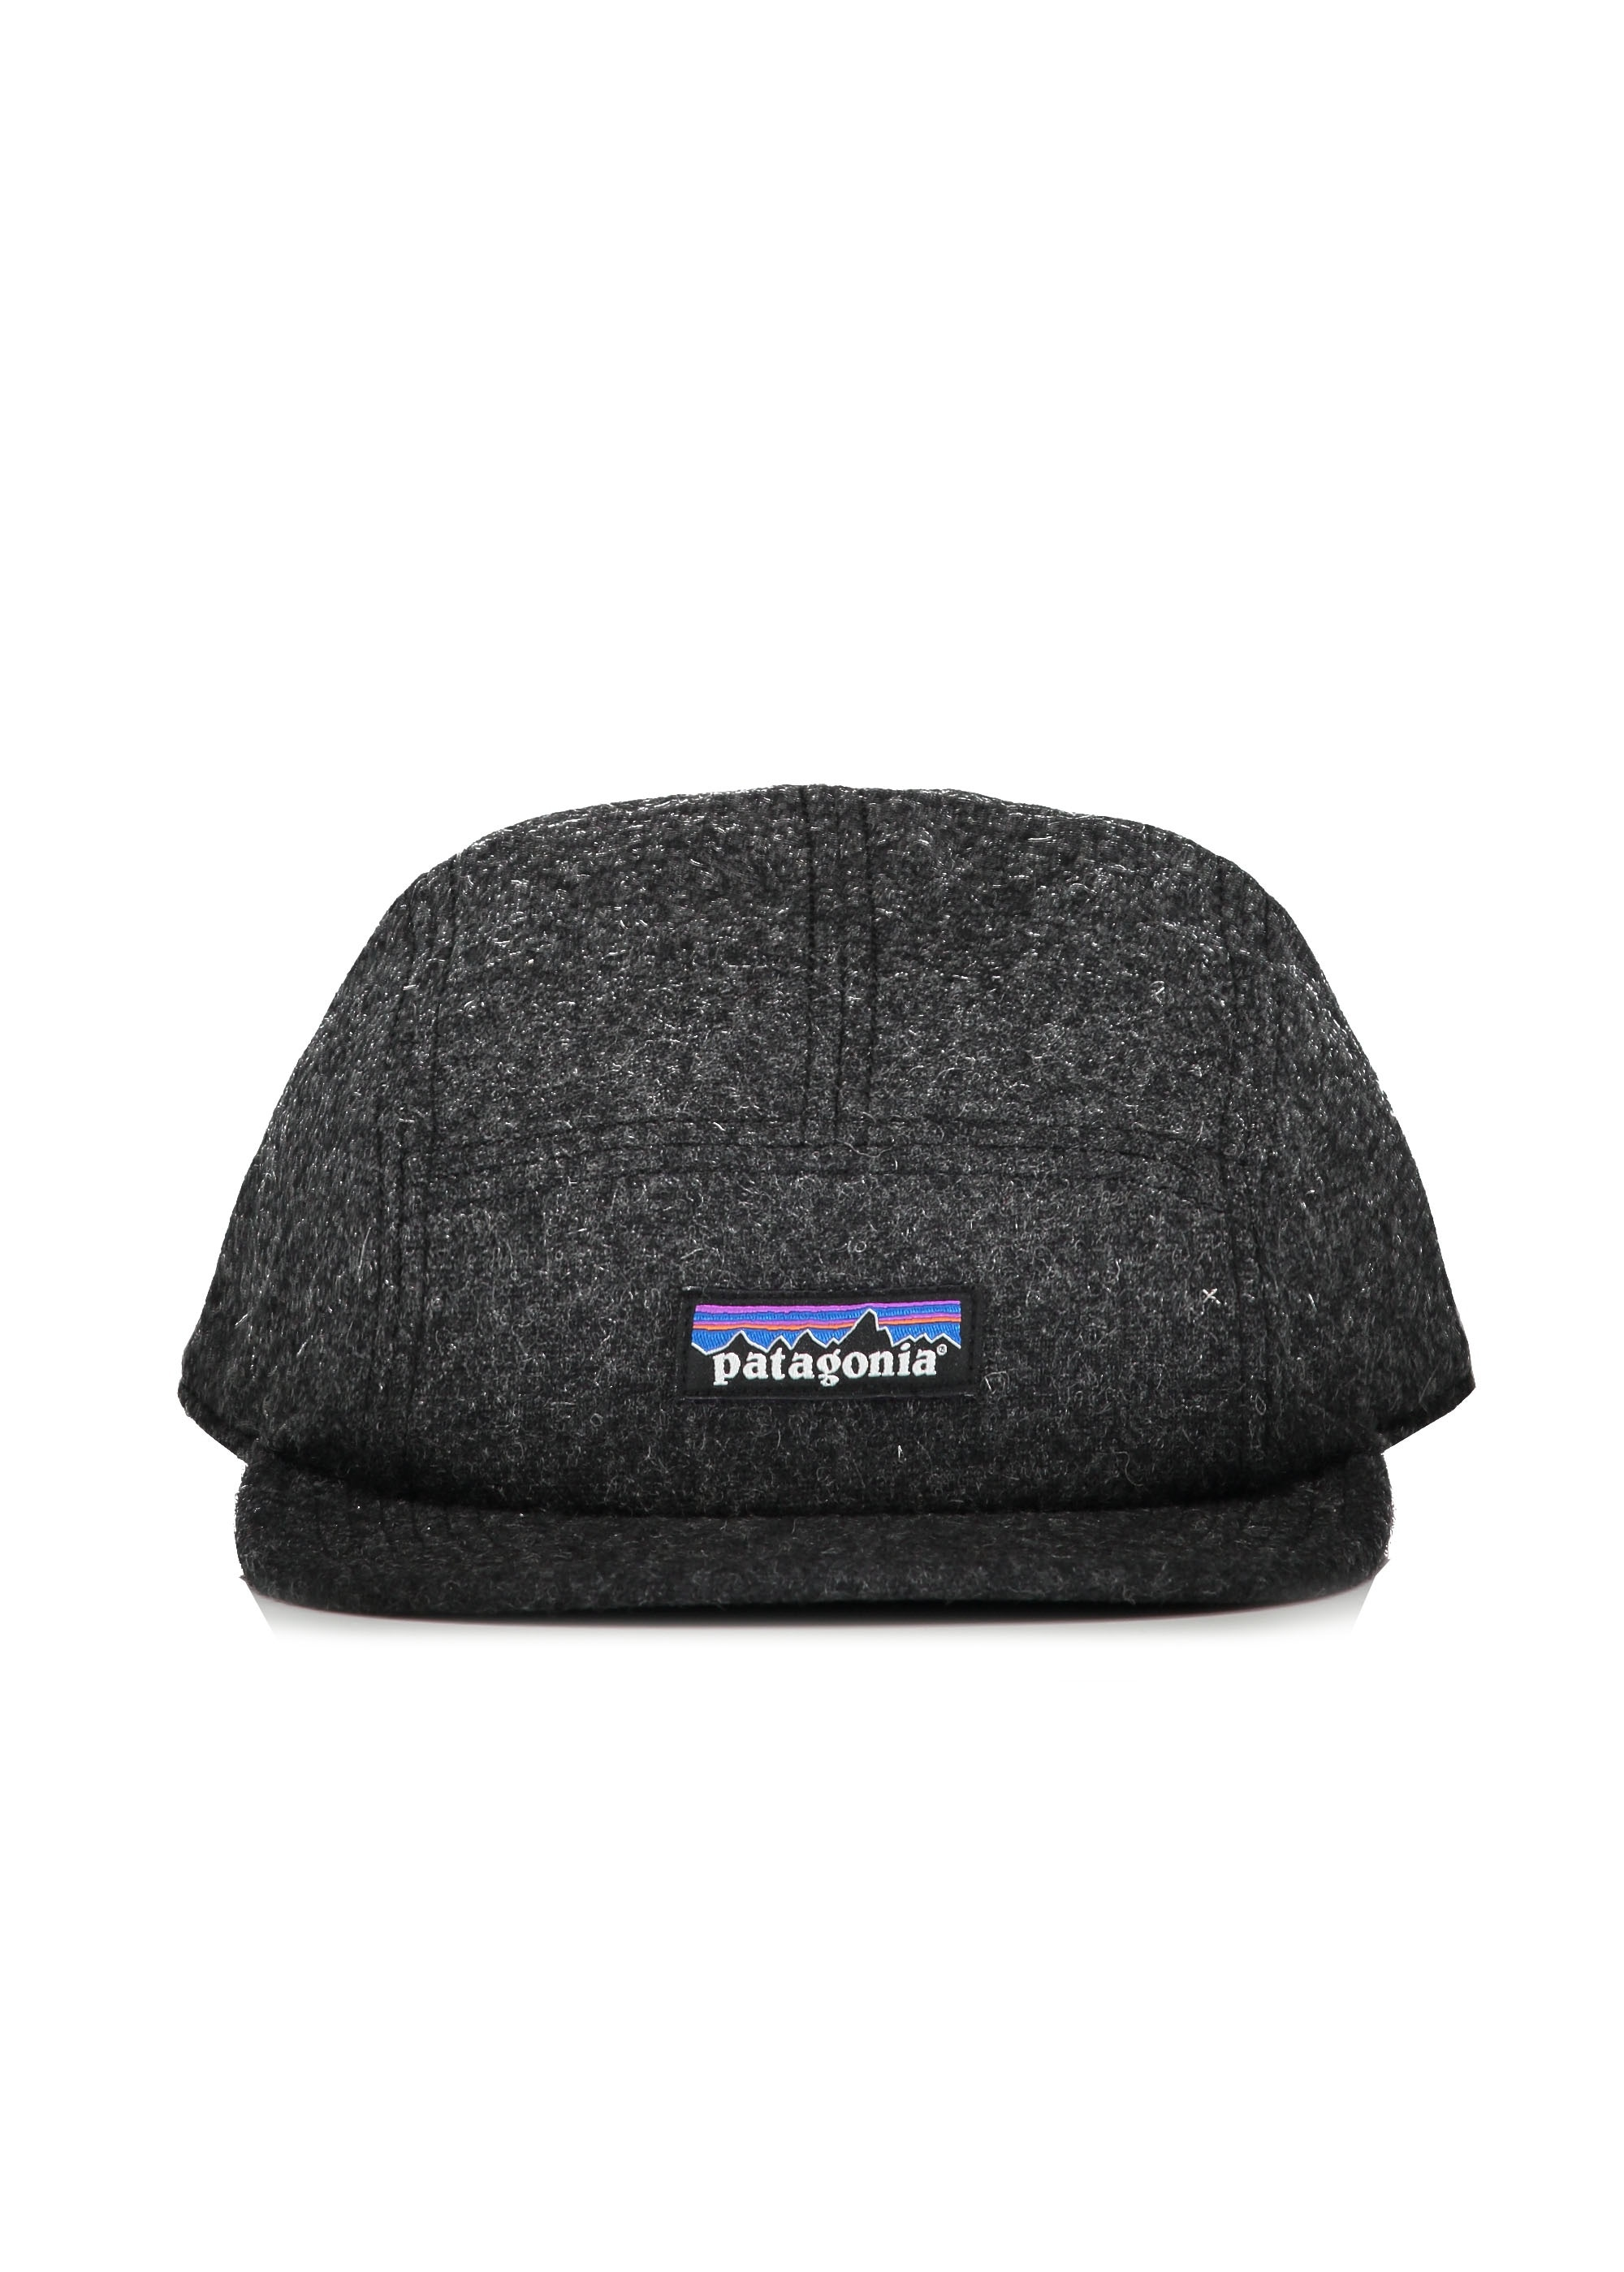 6d0d4d2f Patagonia Recycled Wool Cap - Forge Grey - Headwear from Triads UK